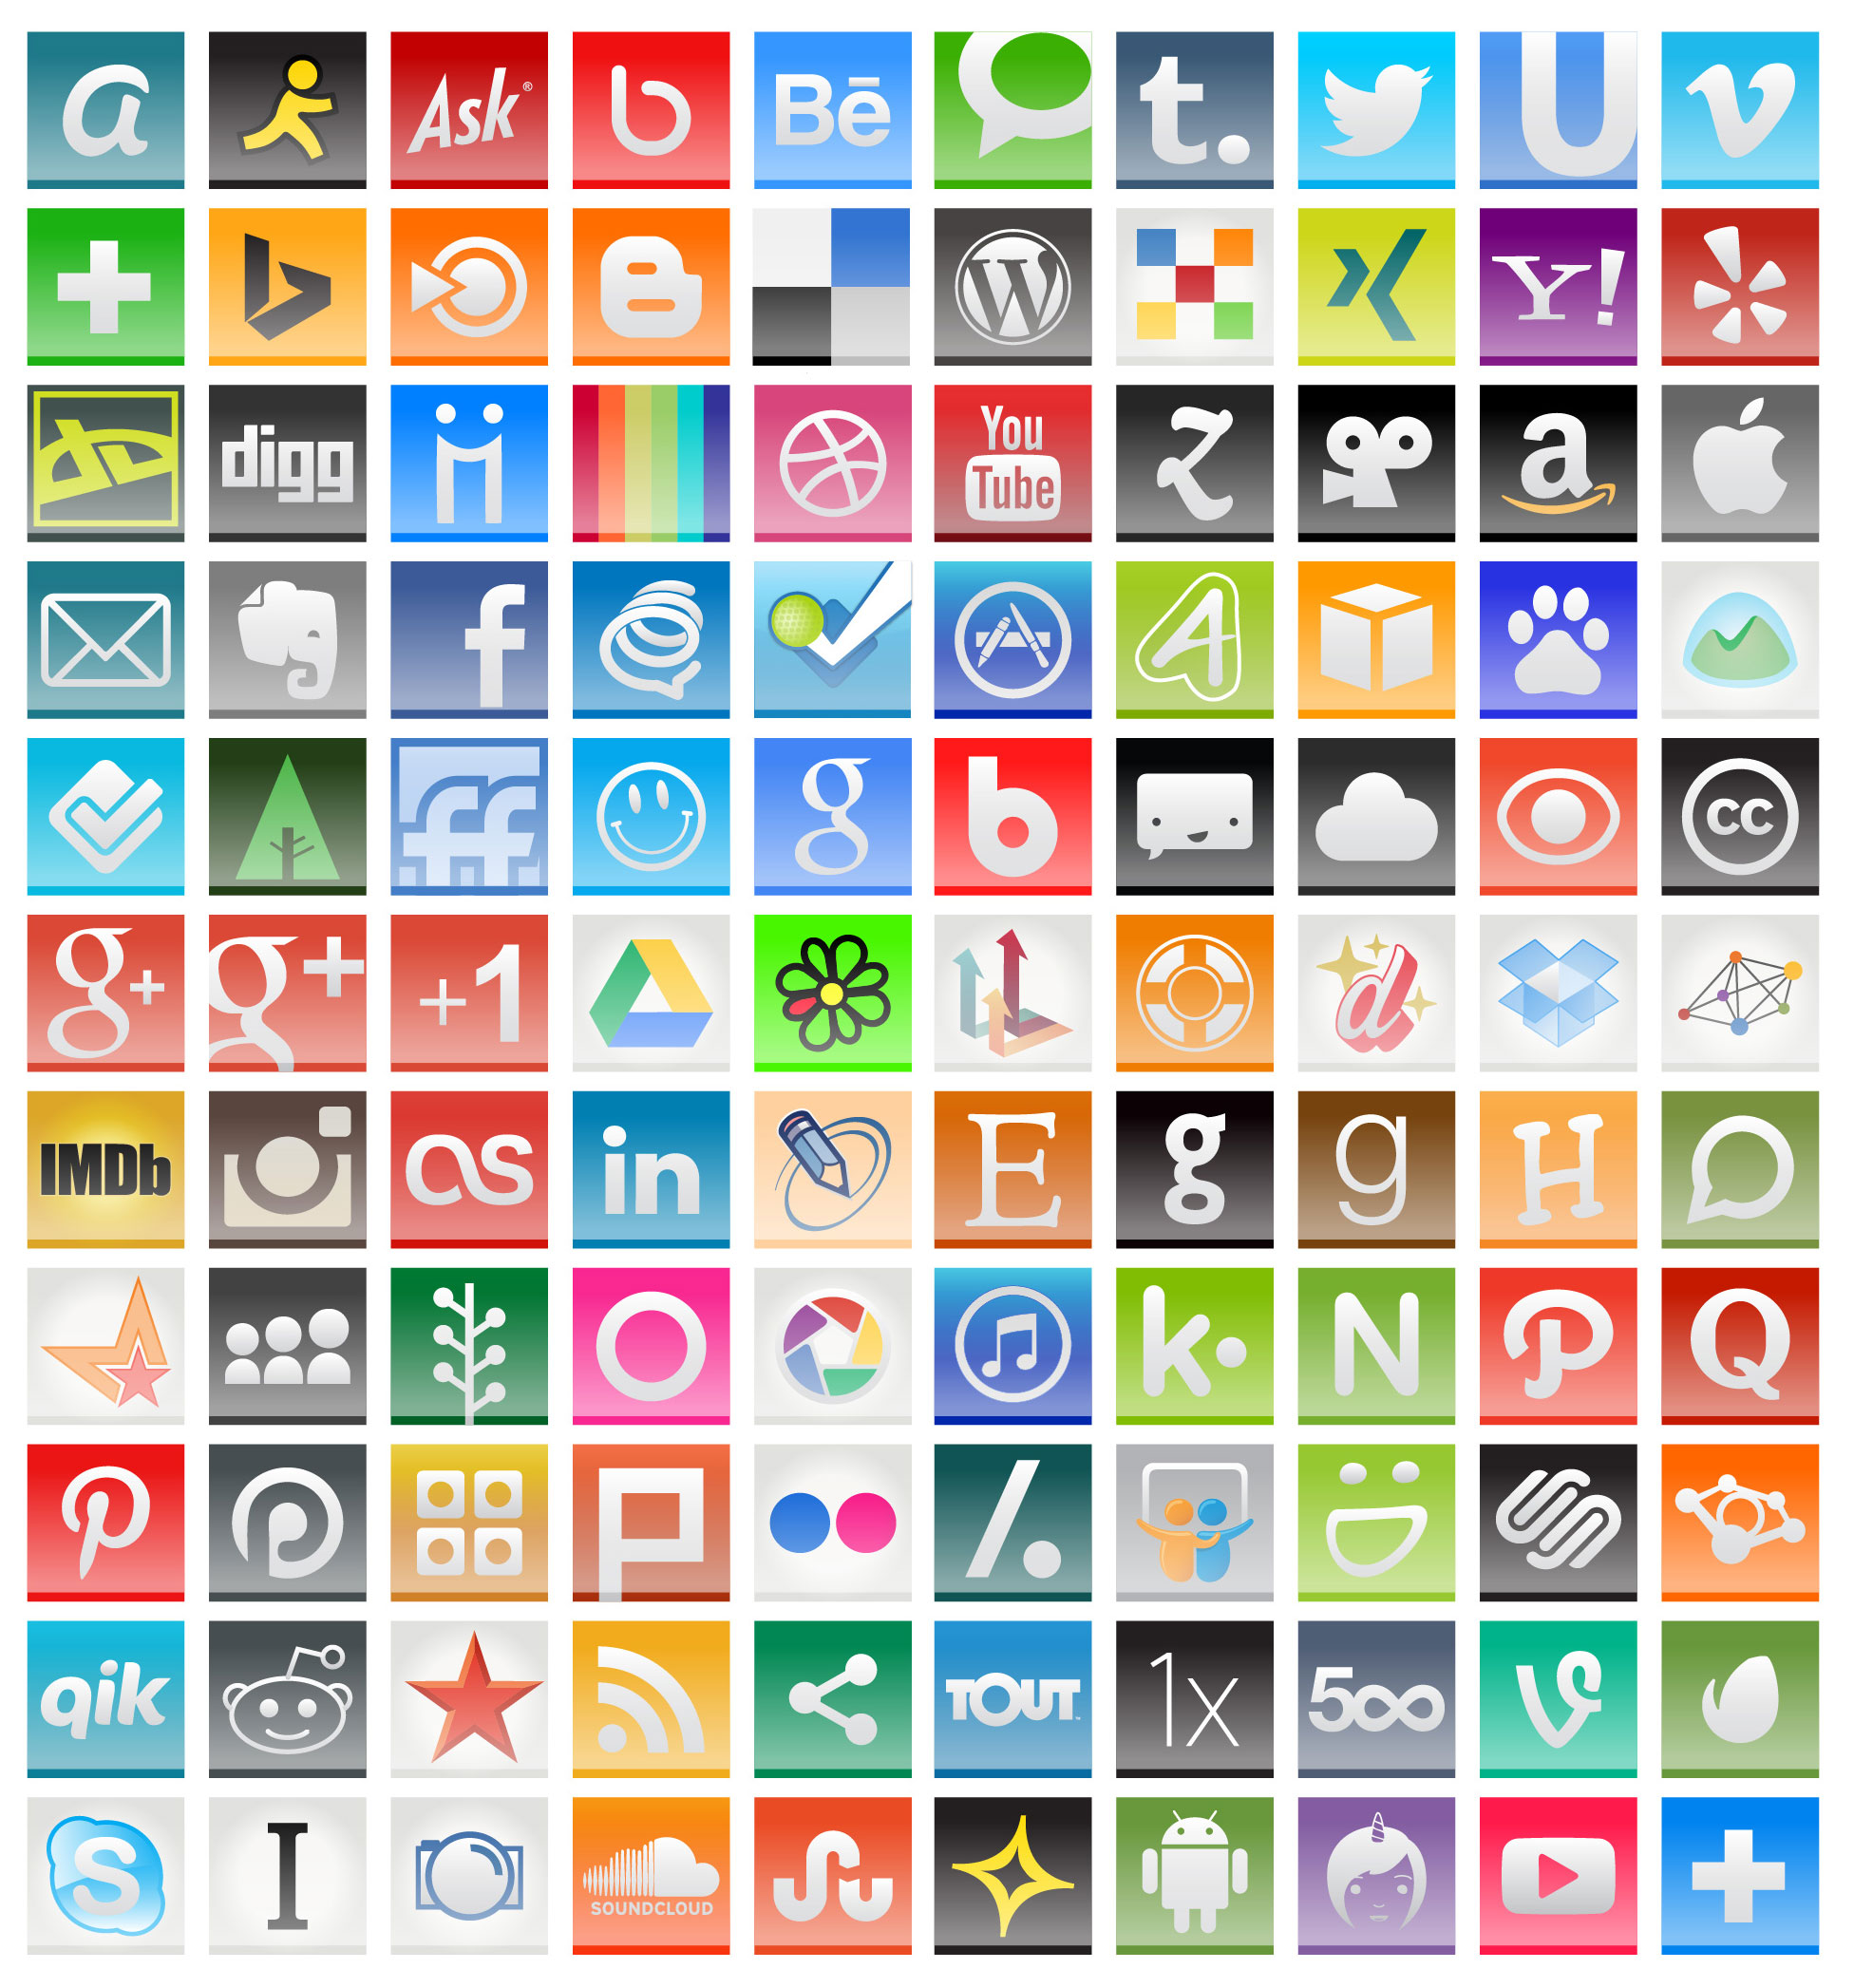 18 2014 Social Media Icons Images